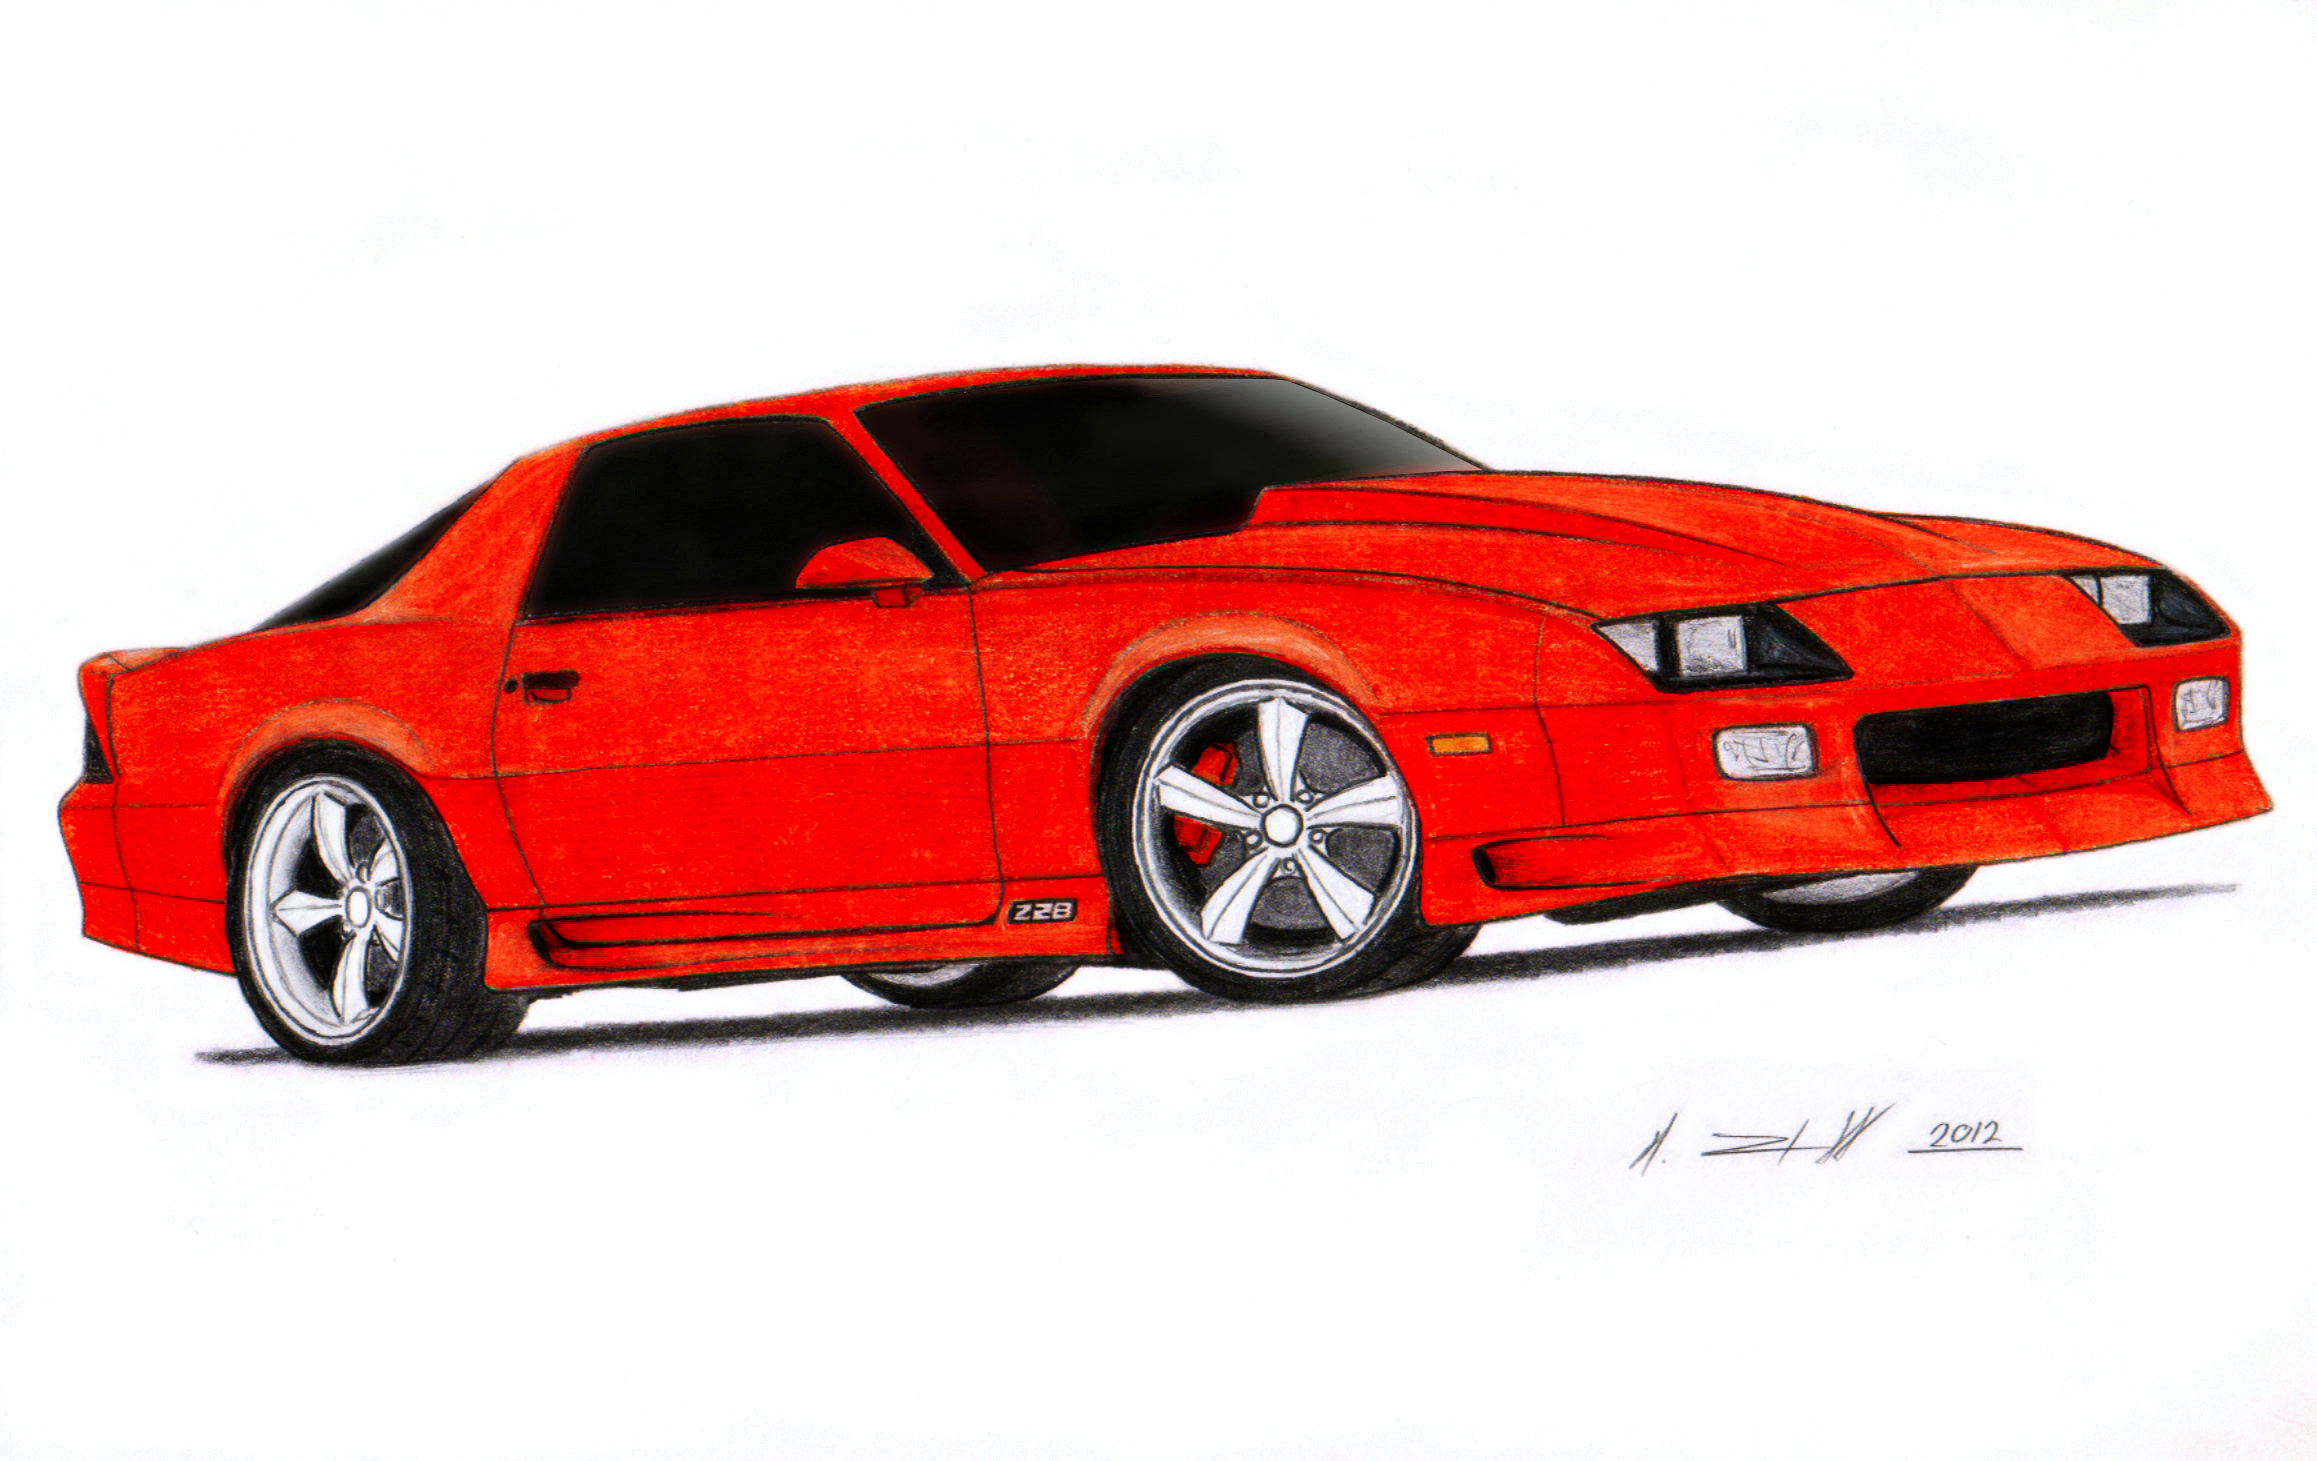 2317x1461 1992 chevrolet camaro z28 iroc z drawing by vertualissimo